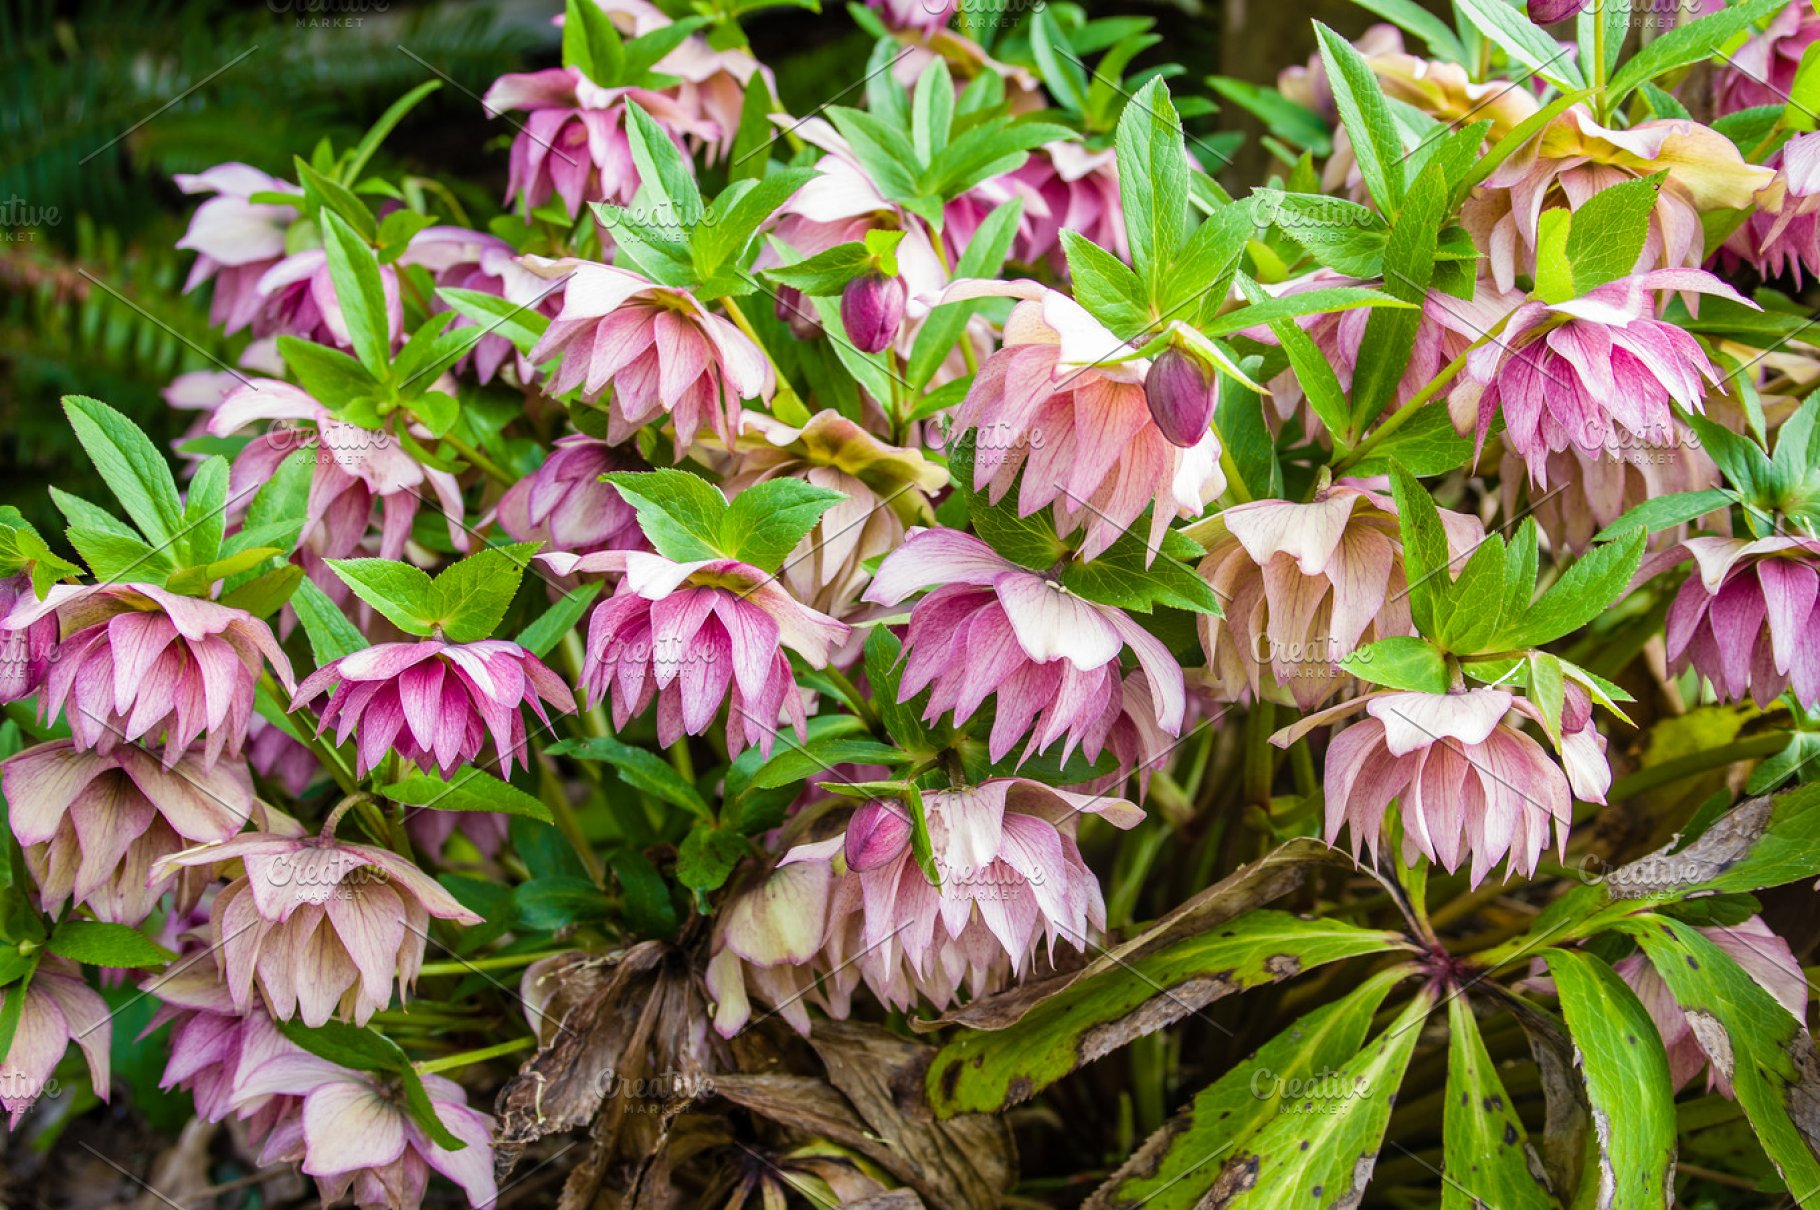 Pink Hellebore Flower In Bloom High Quality Nature Stock Photos